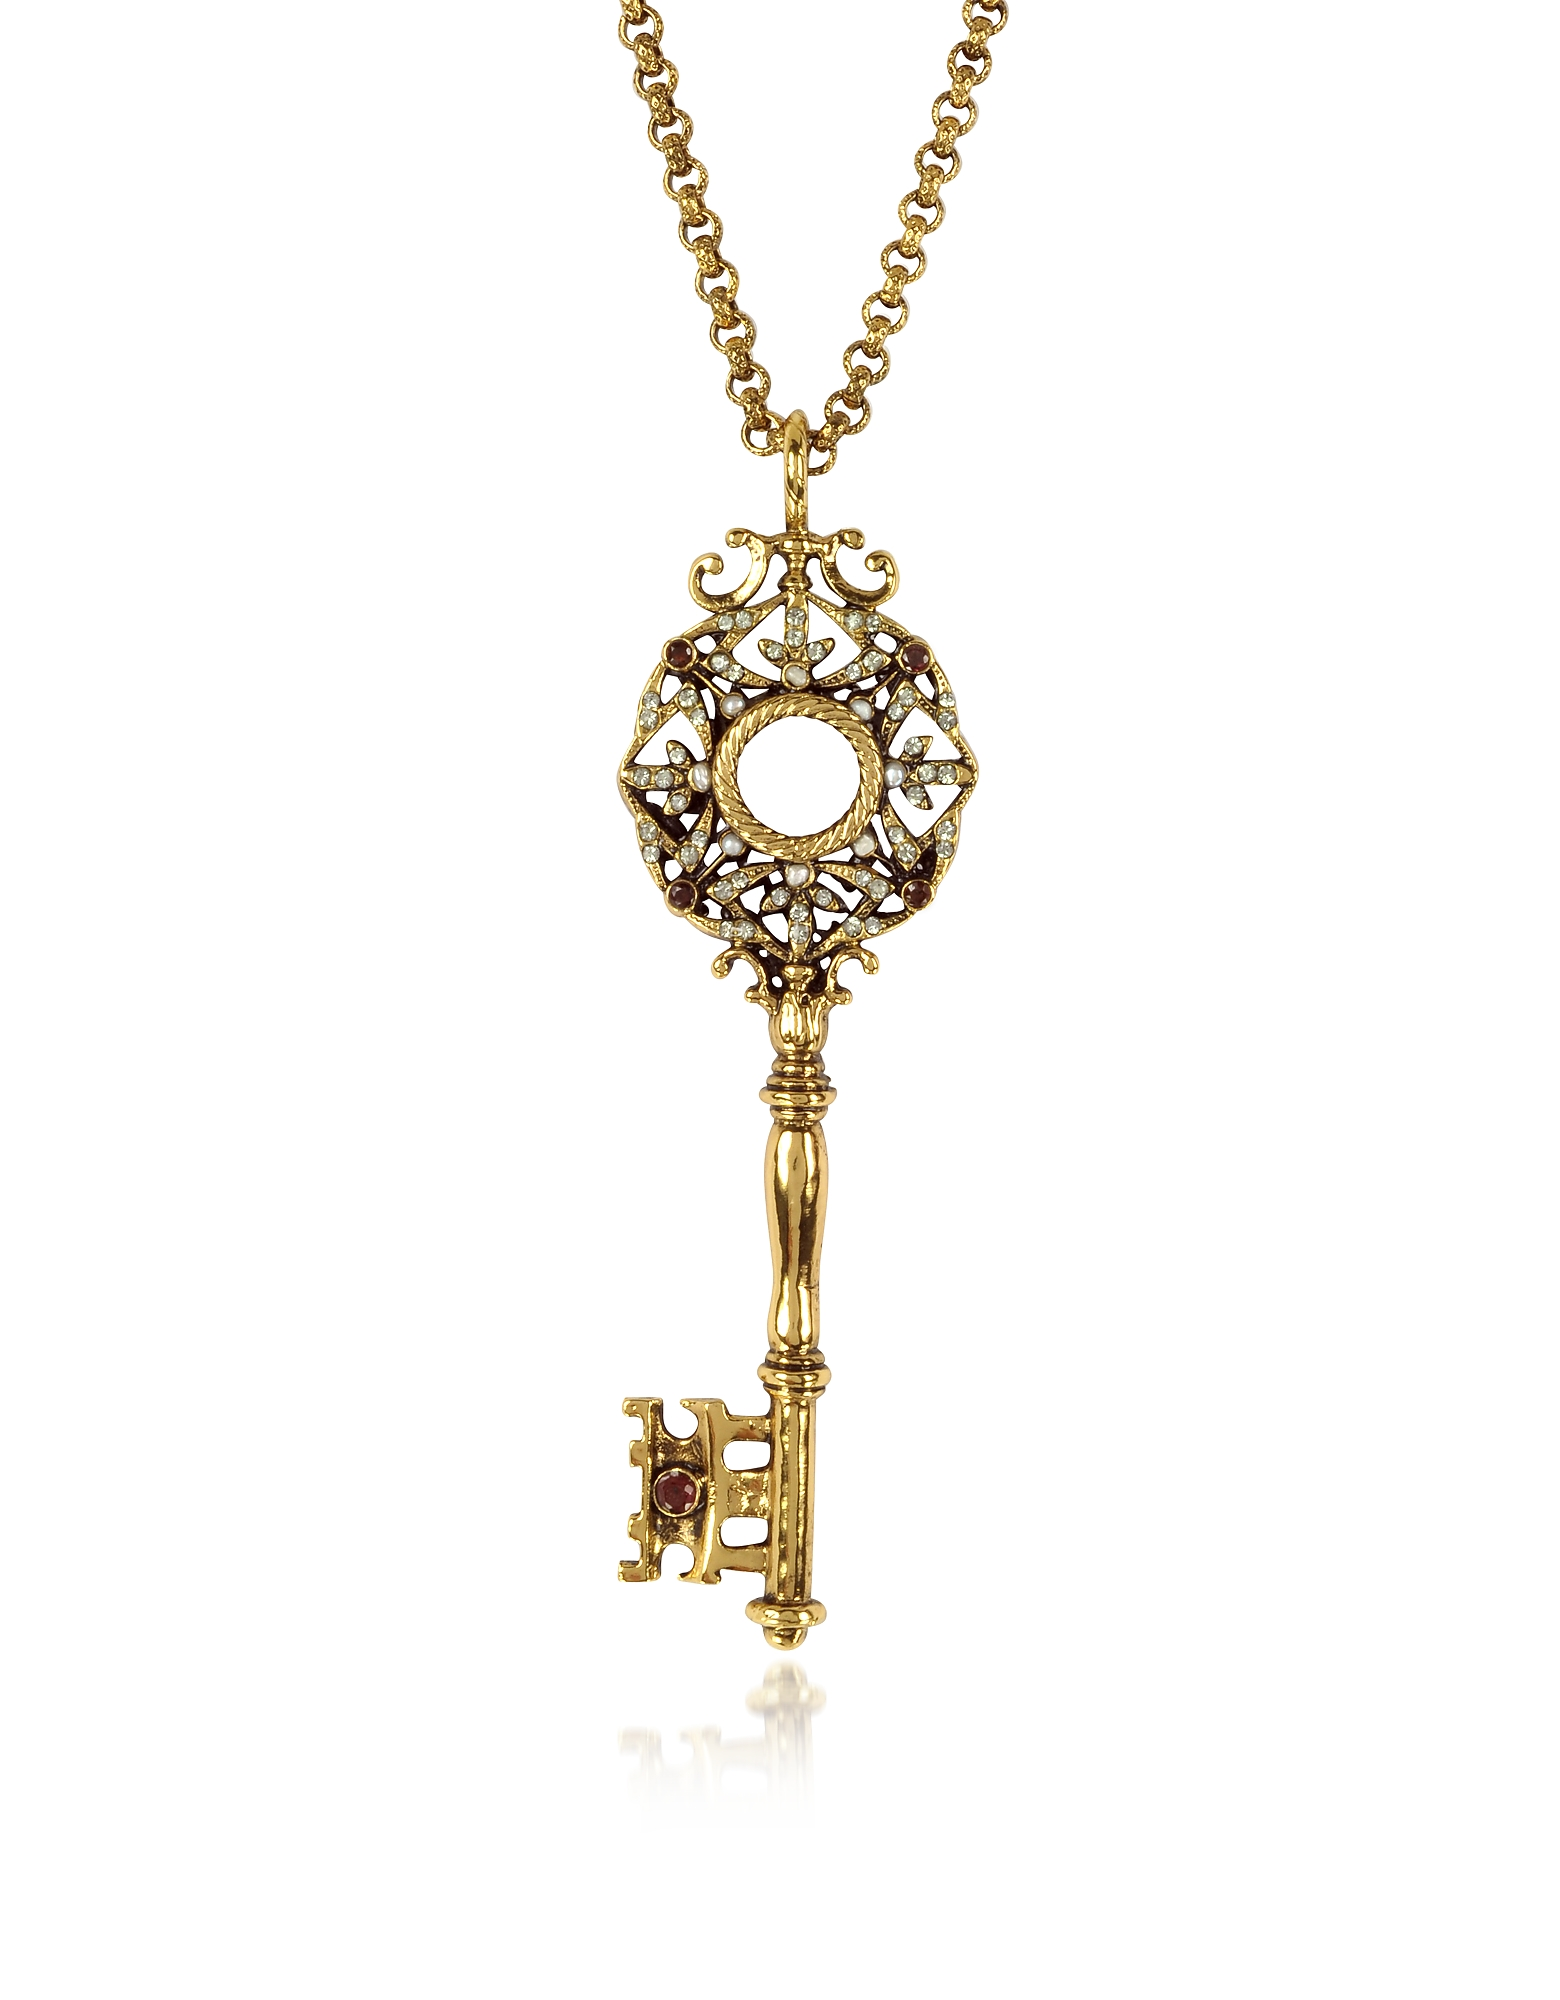 Brass Key Long Necklace